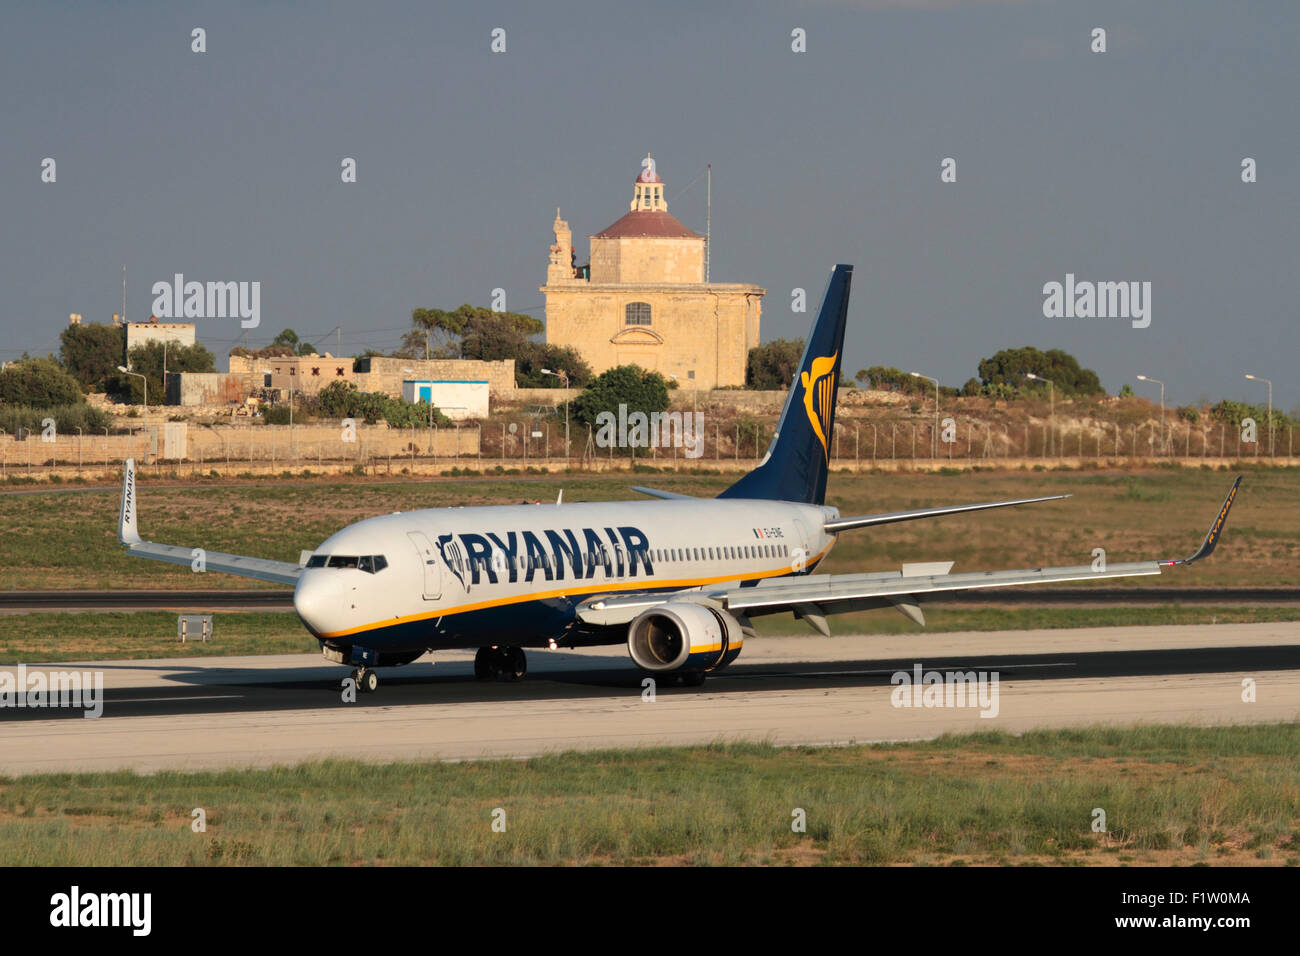 Low cost air travel in the EU. Ryanair Boeing 737-800 jet plane on arrival in Malta, with Ta' Loretu chapel, - Stock Image